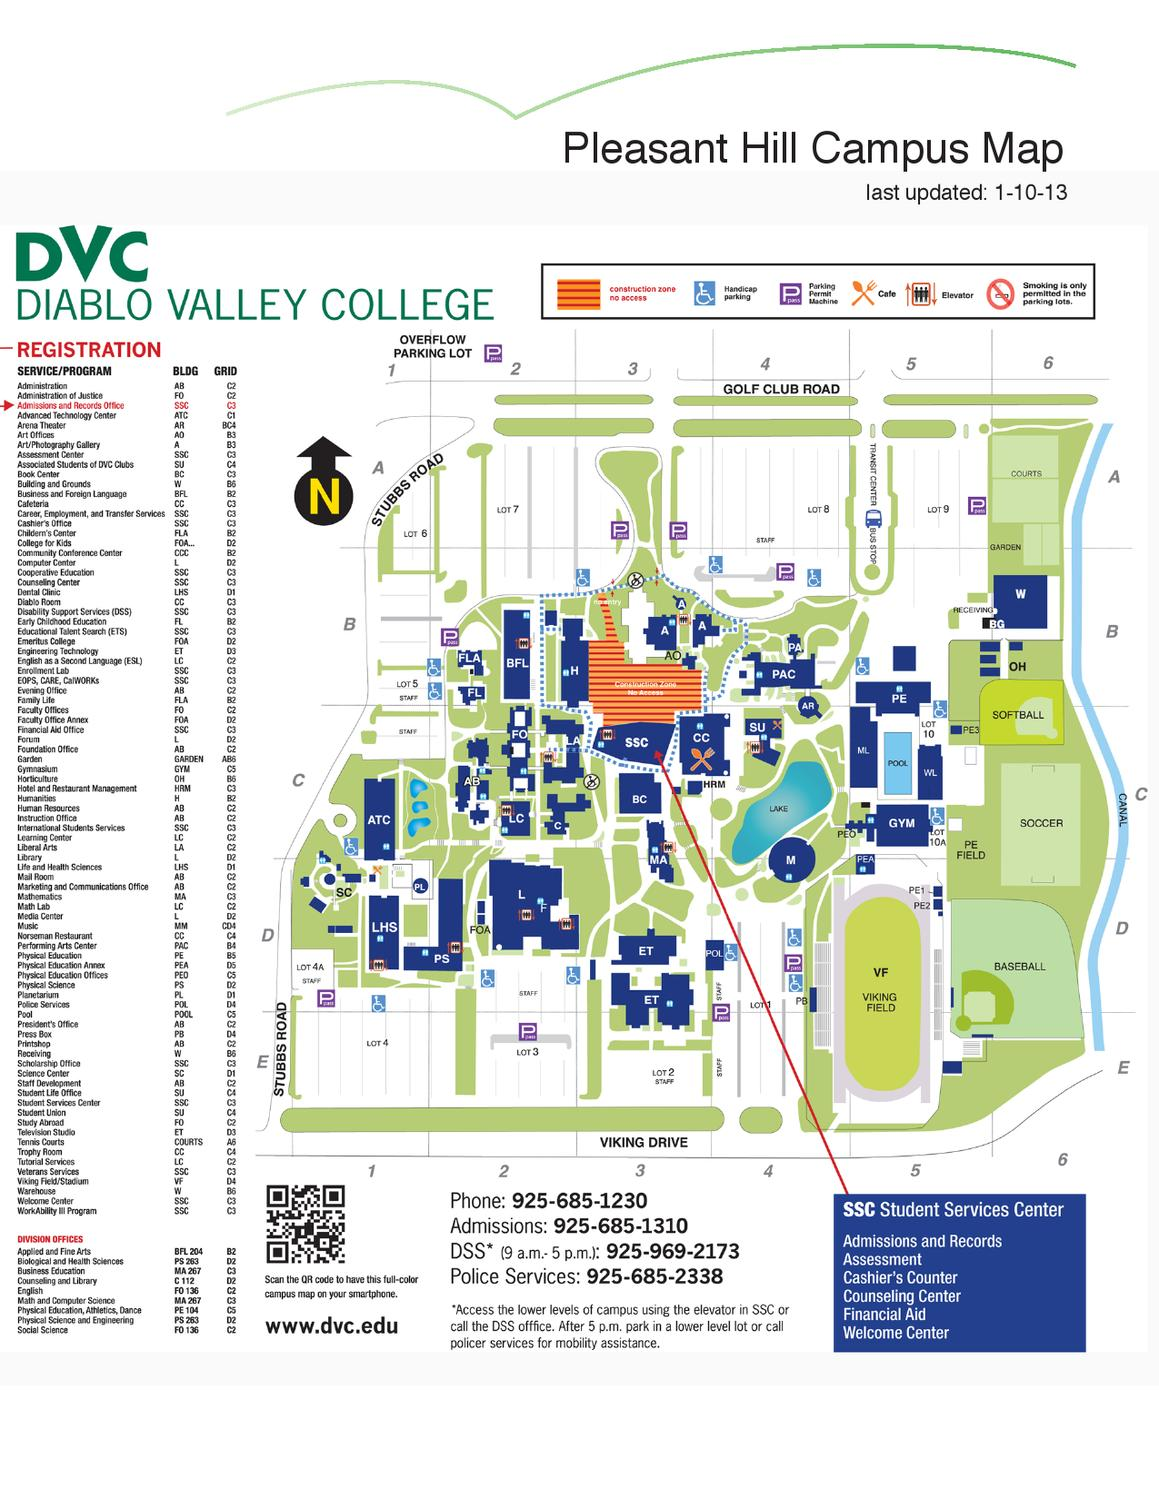 dvc pleasant hill campus map Spring 2013 Class Schedule By Diablo Valley College Issuu dvc pleasant hill campus map